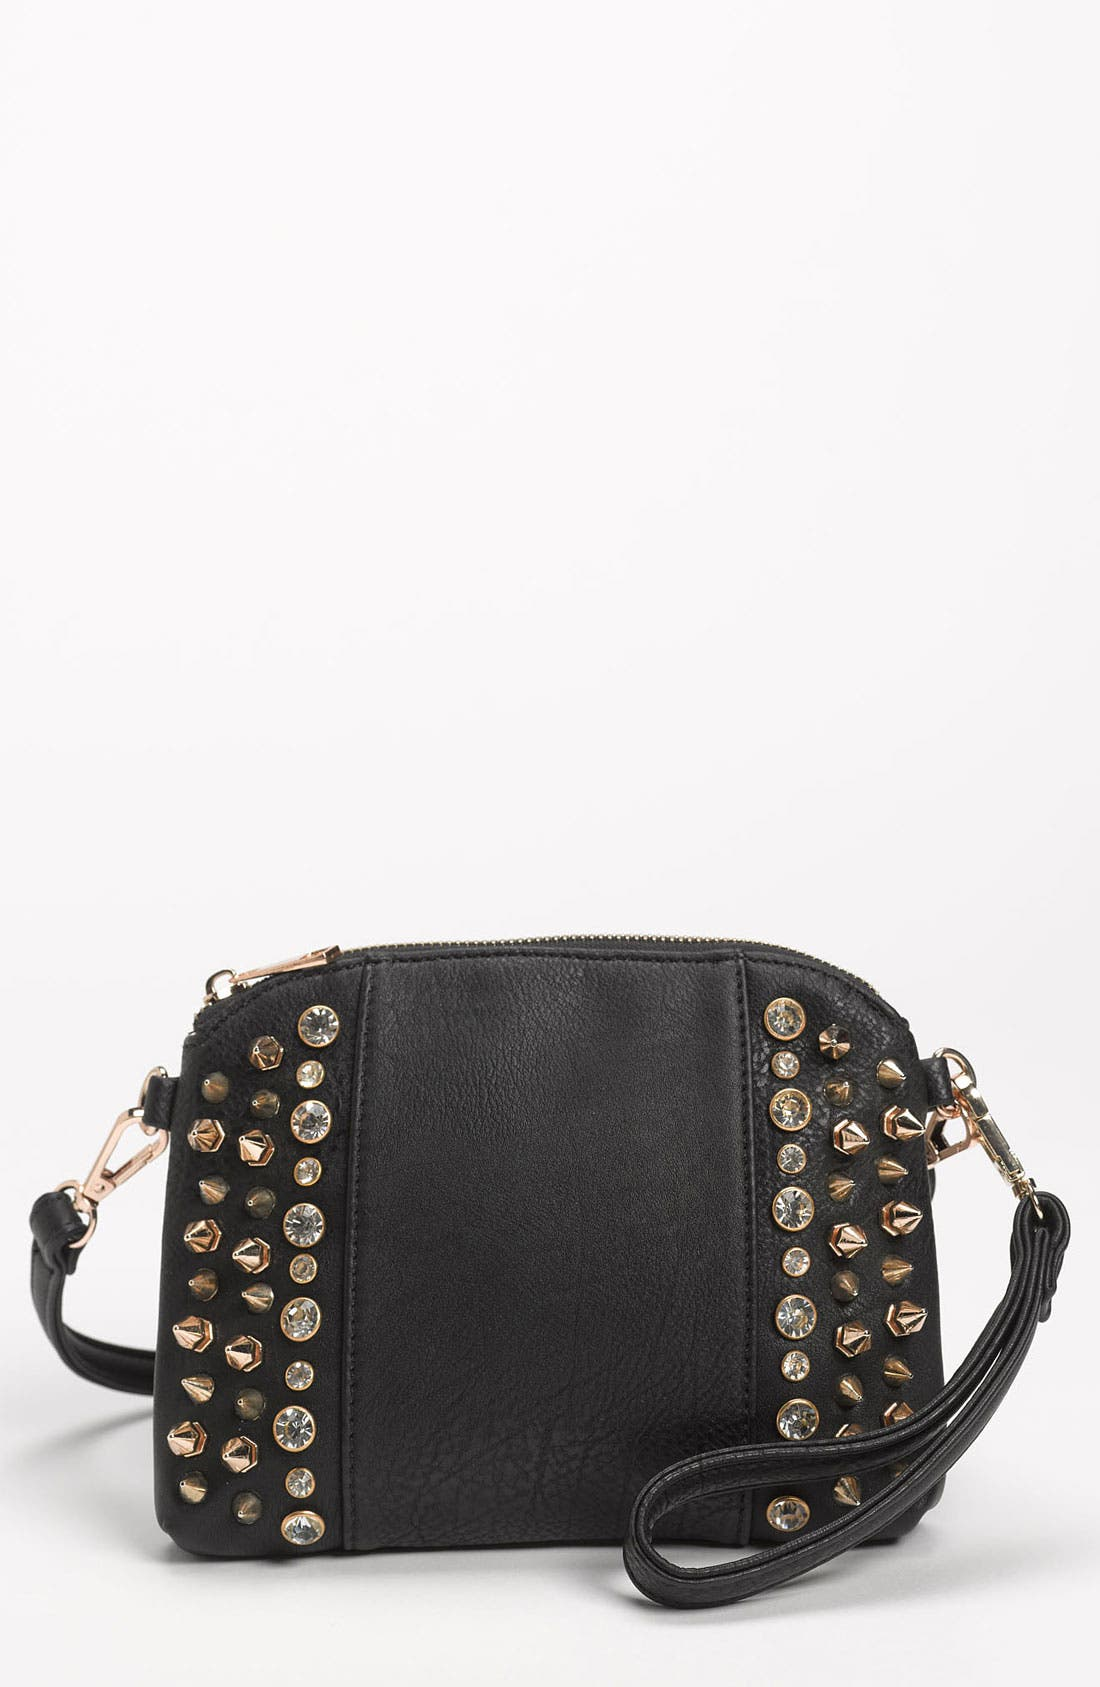 Alternate Image 1 Selected - Street Level Stud & Rhinestone Convertible Clutch